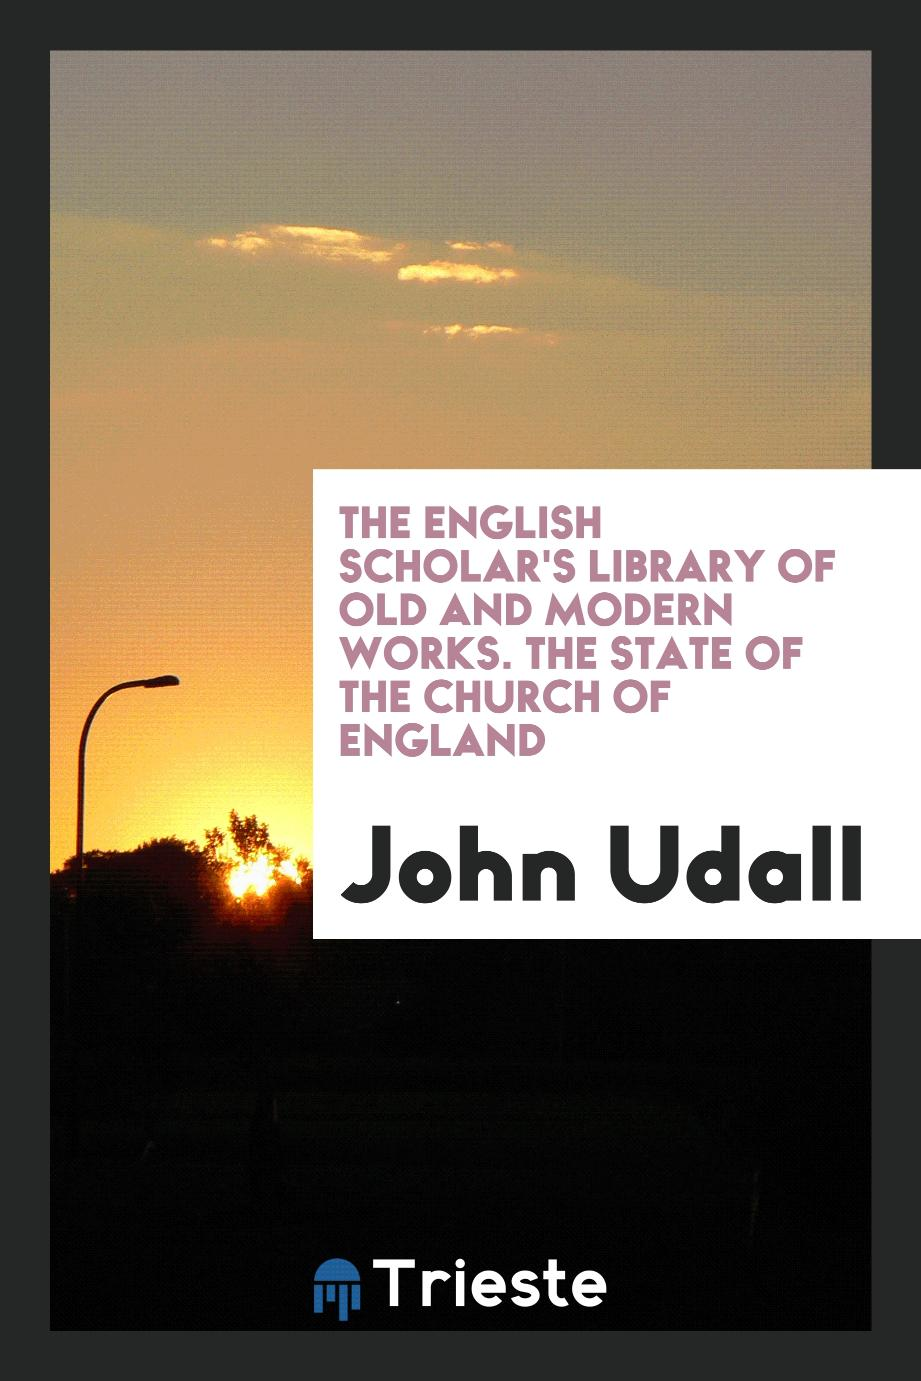 John Udall - The English scholar's library of old and modern works. The State of the Church of England